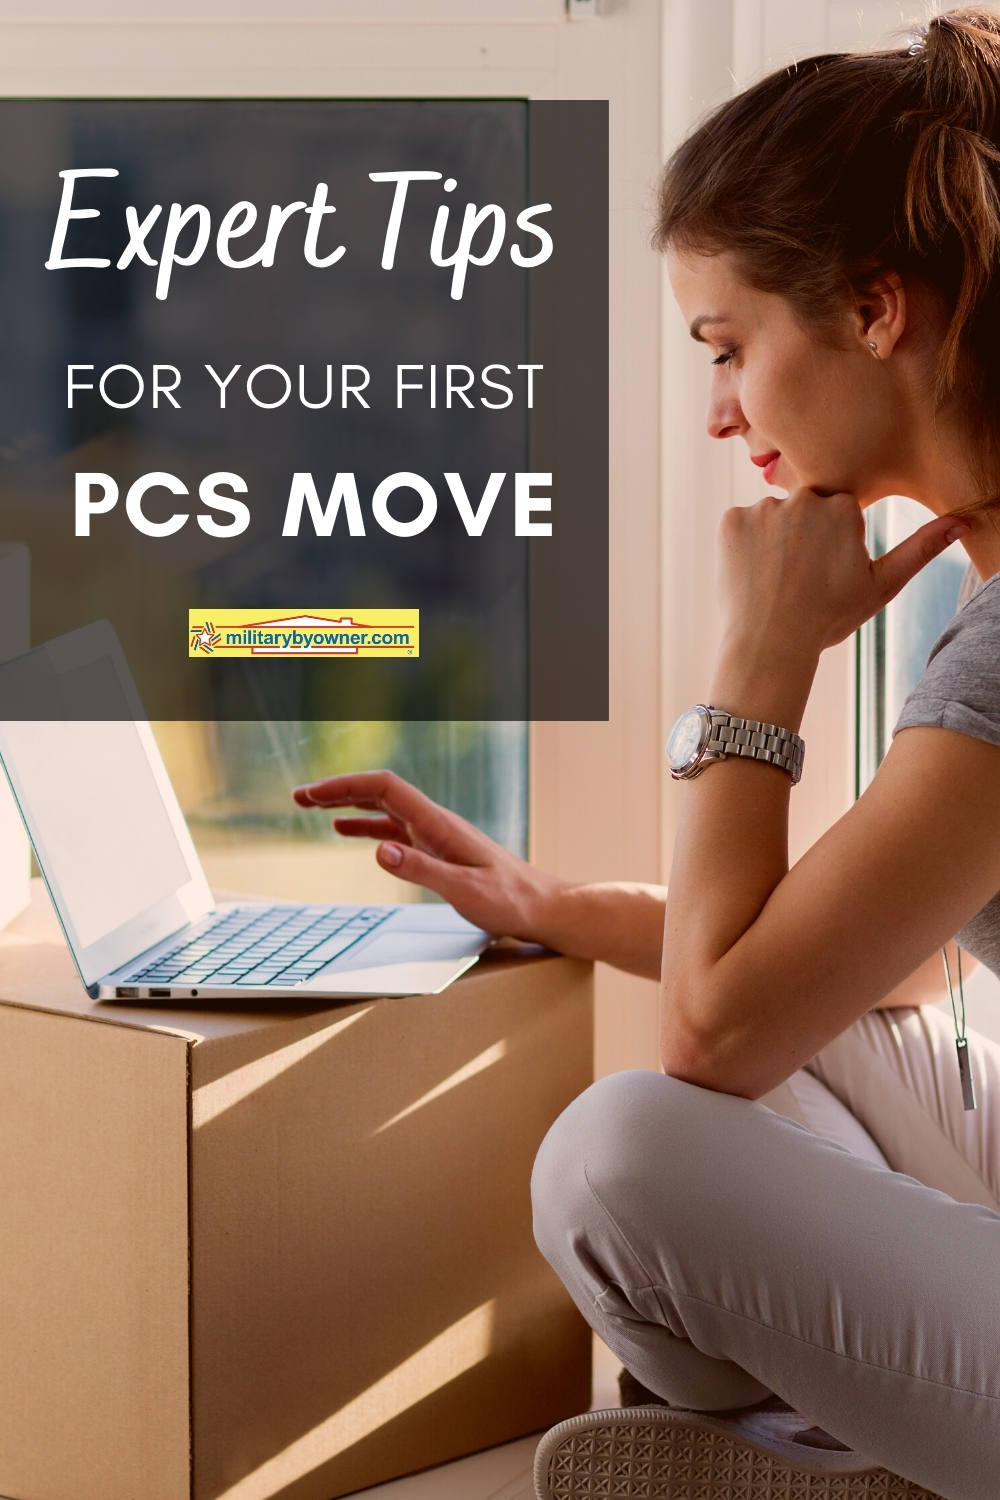 Expert Tips for Your First PCS Move